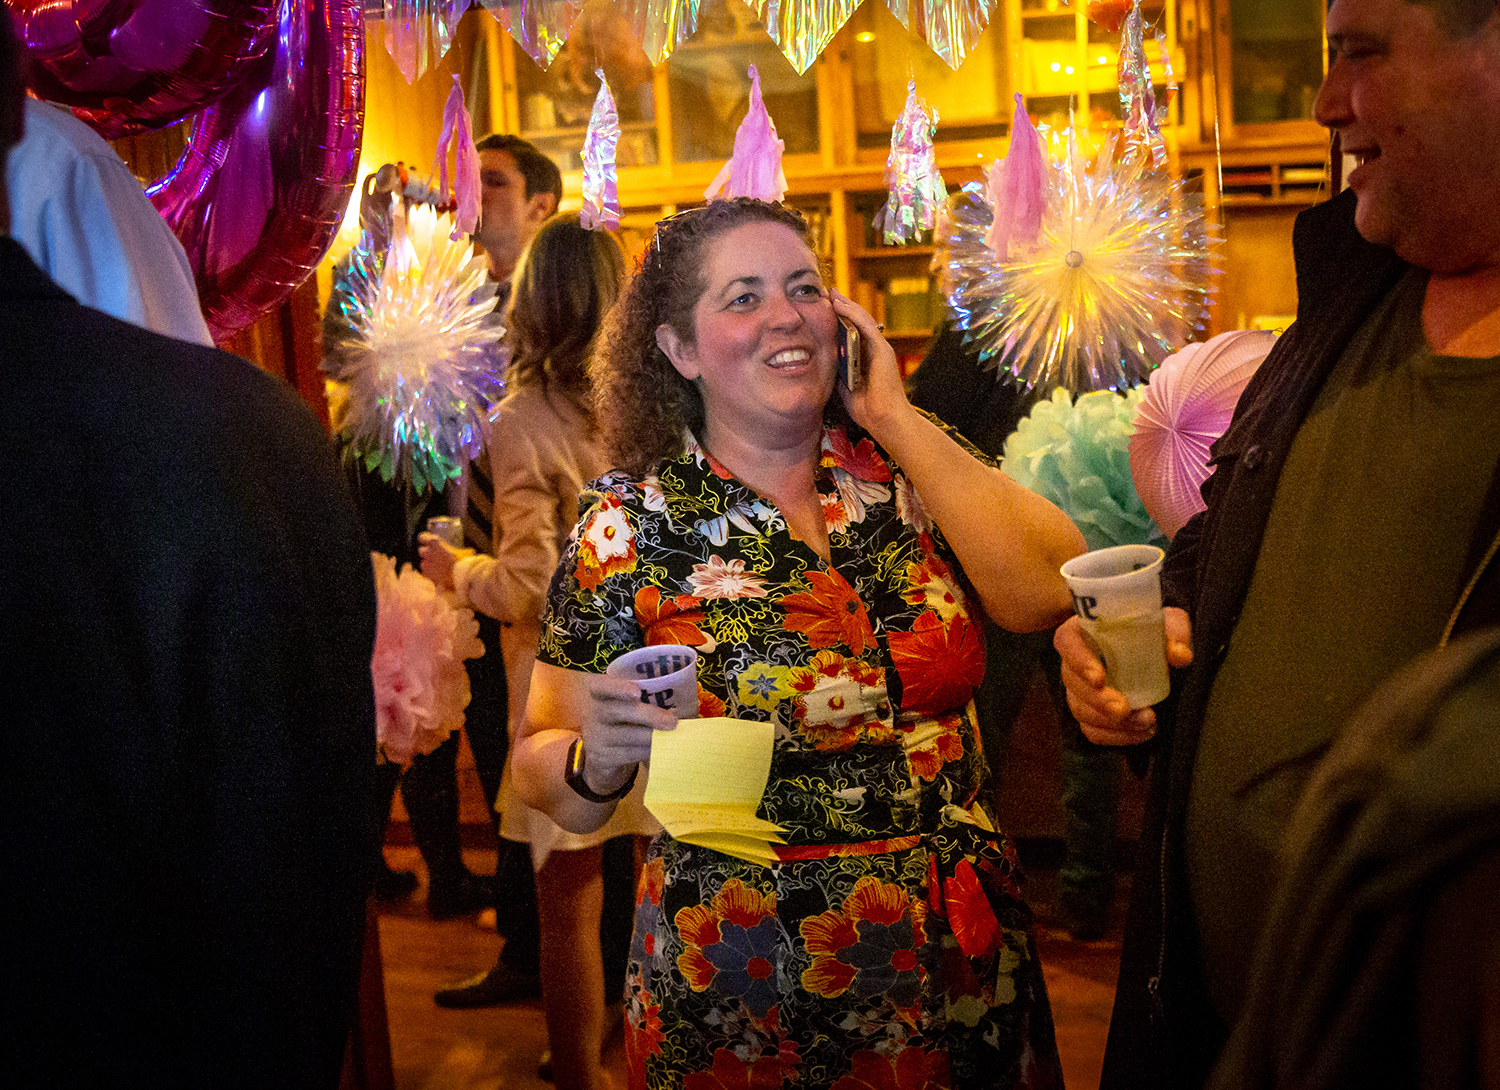 Erin Conley, candidate for Ward 8, center, takes phone calls after winning her race during an election night party hosted by the Sangamon County Democratic Party at D H Brown's, Tuesday, April 2, 2019, in Springfield, Ill. [Justin L. Fowler/The State Journal-Register]